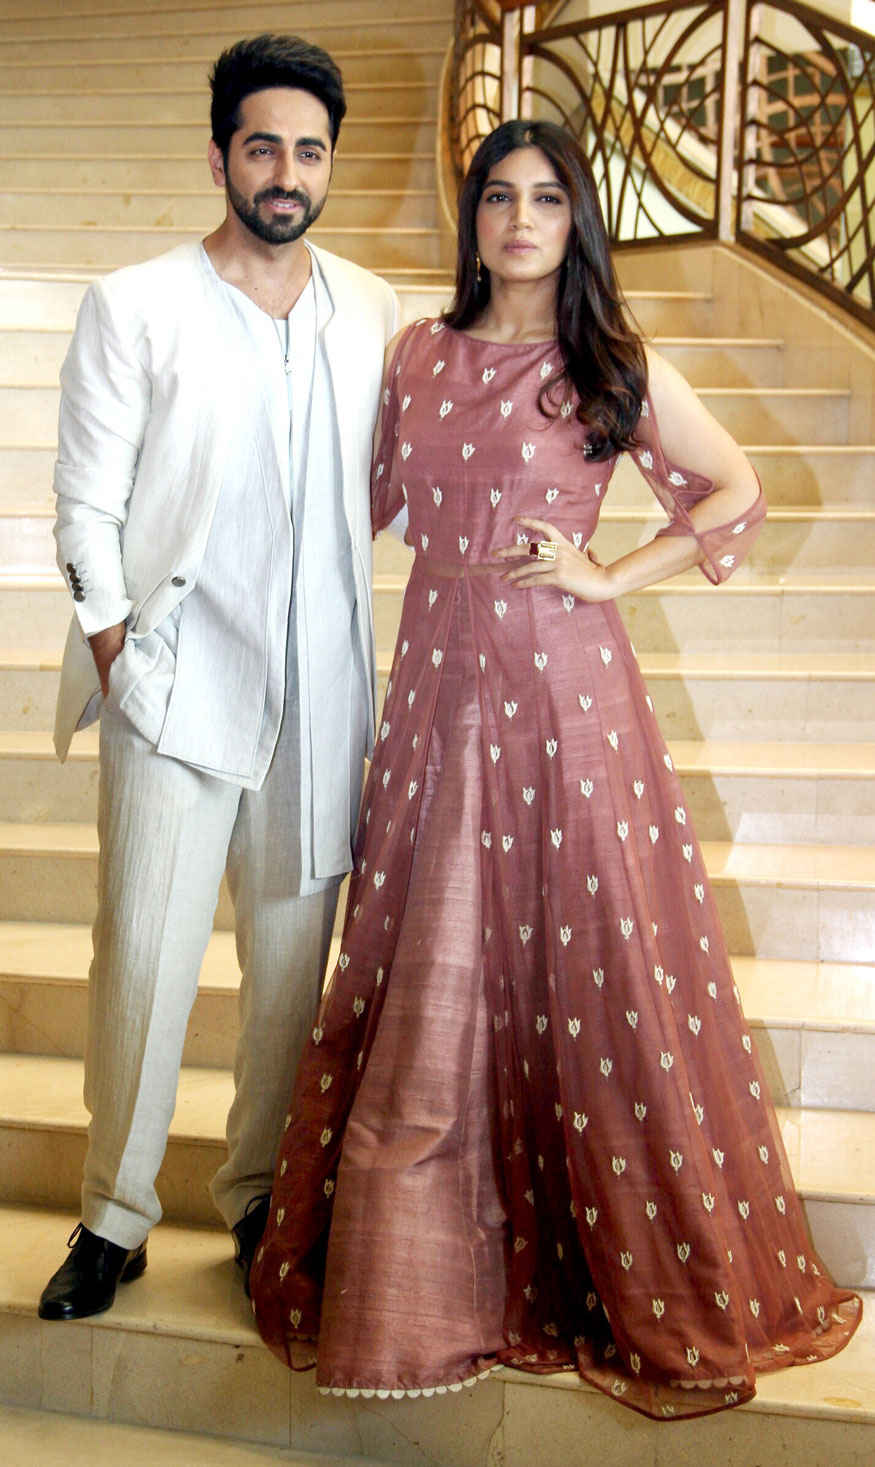 Ayushmann Khurrana and Bhumi Pednekar at Trailer Launch of 'Shubh Mangal Savdhan'